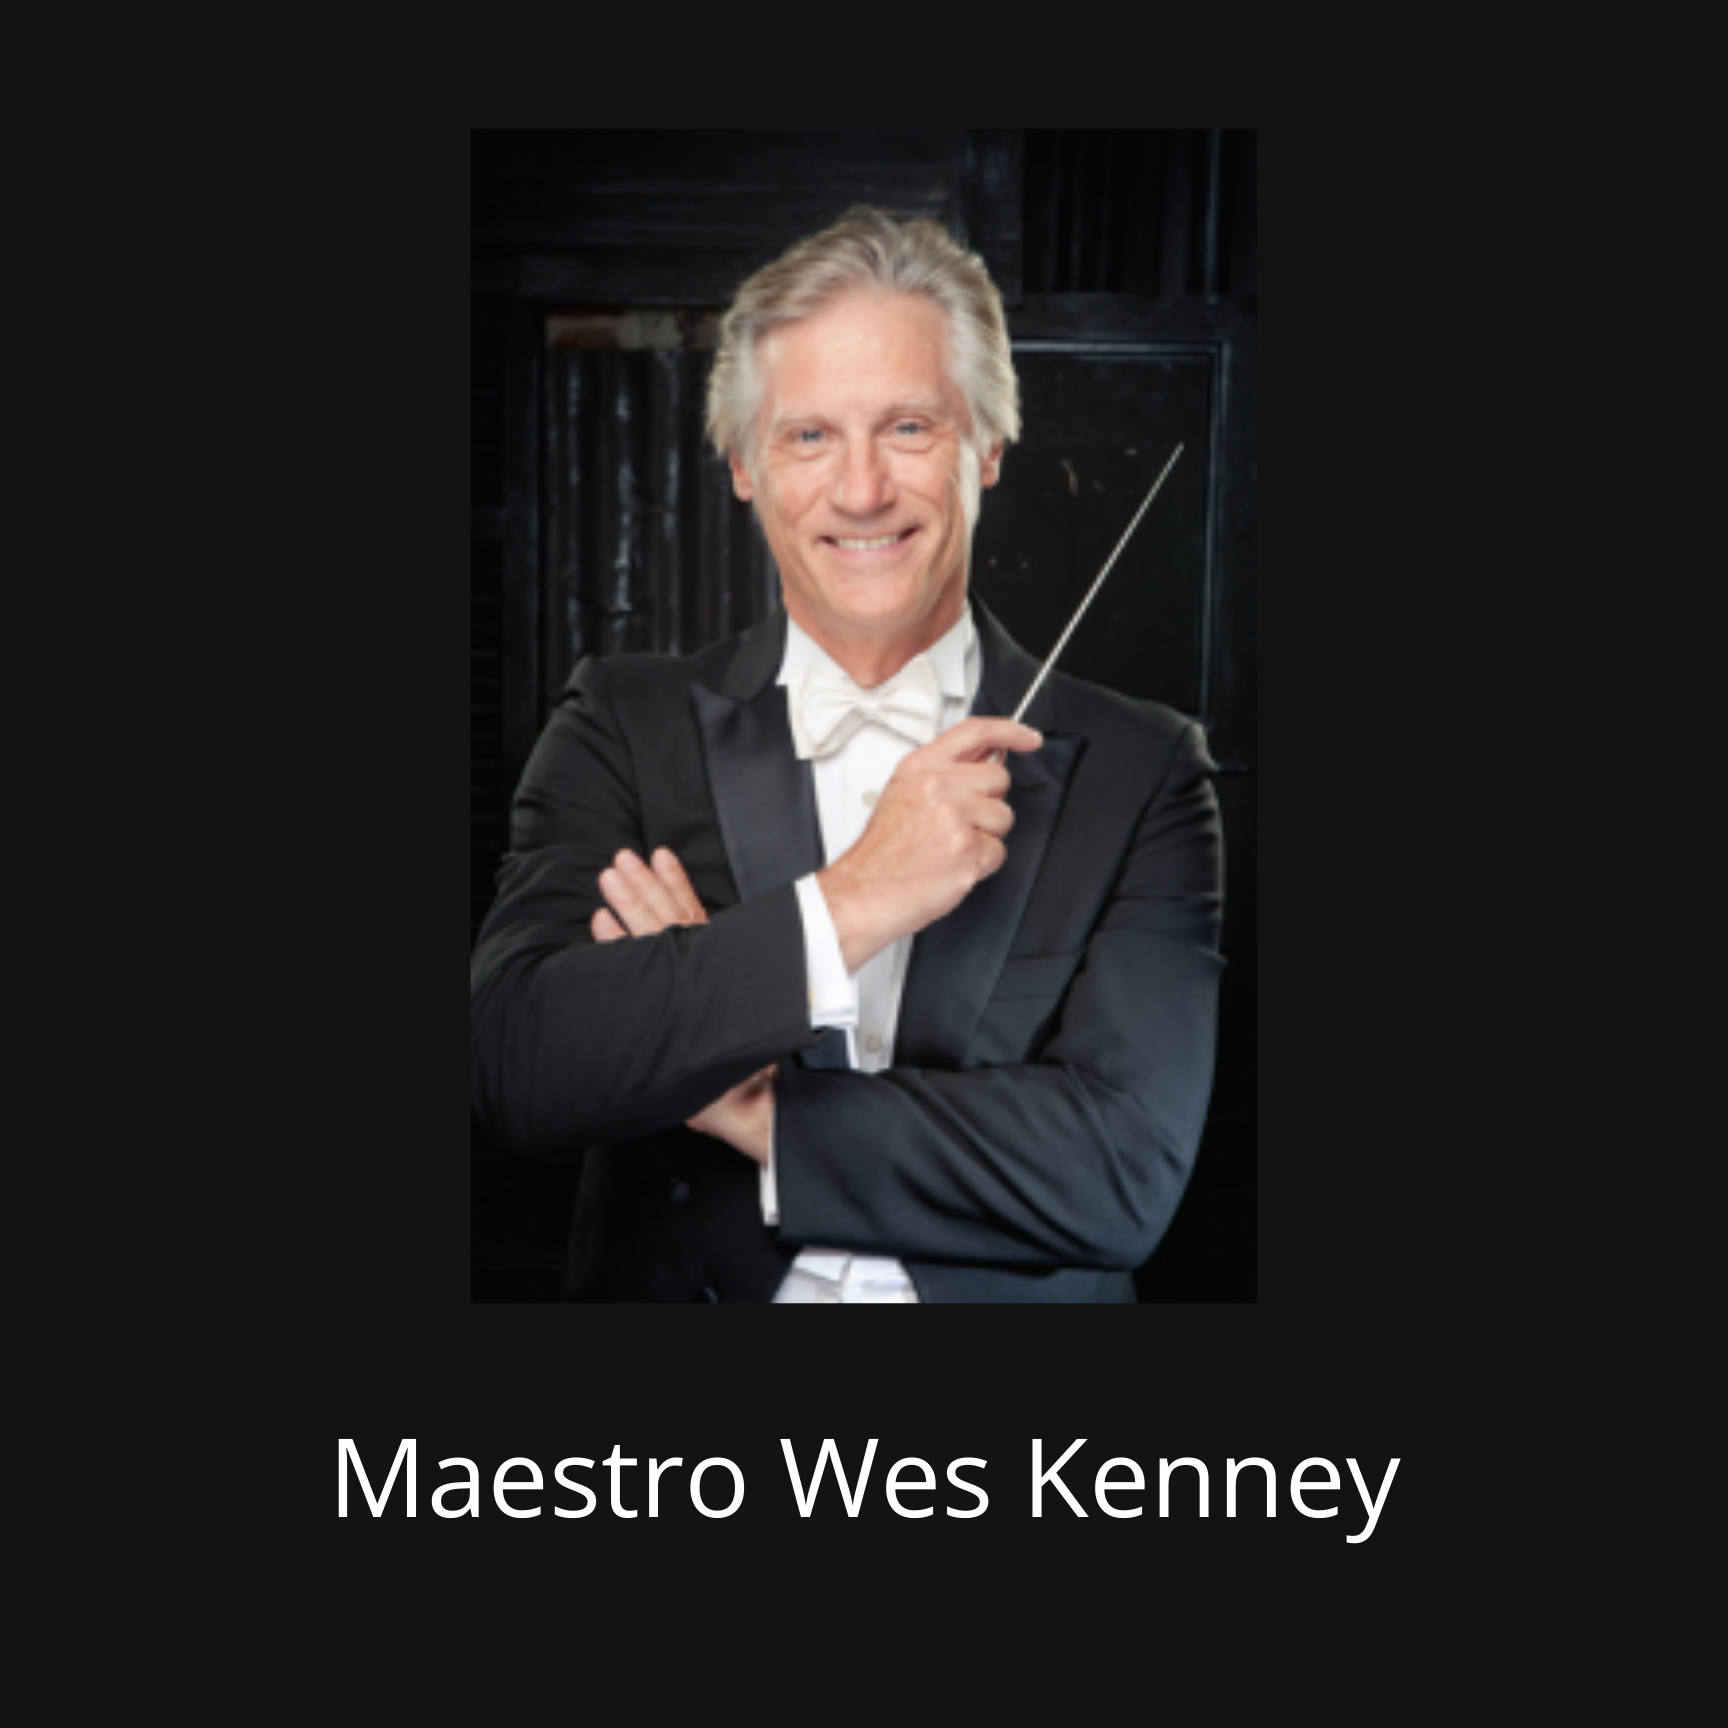 Maestro Kenney bestowed prestigious honor by The American Prize